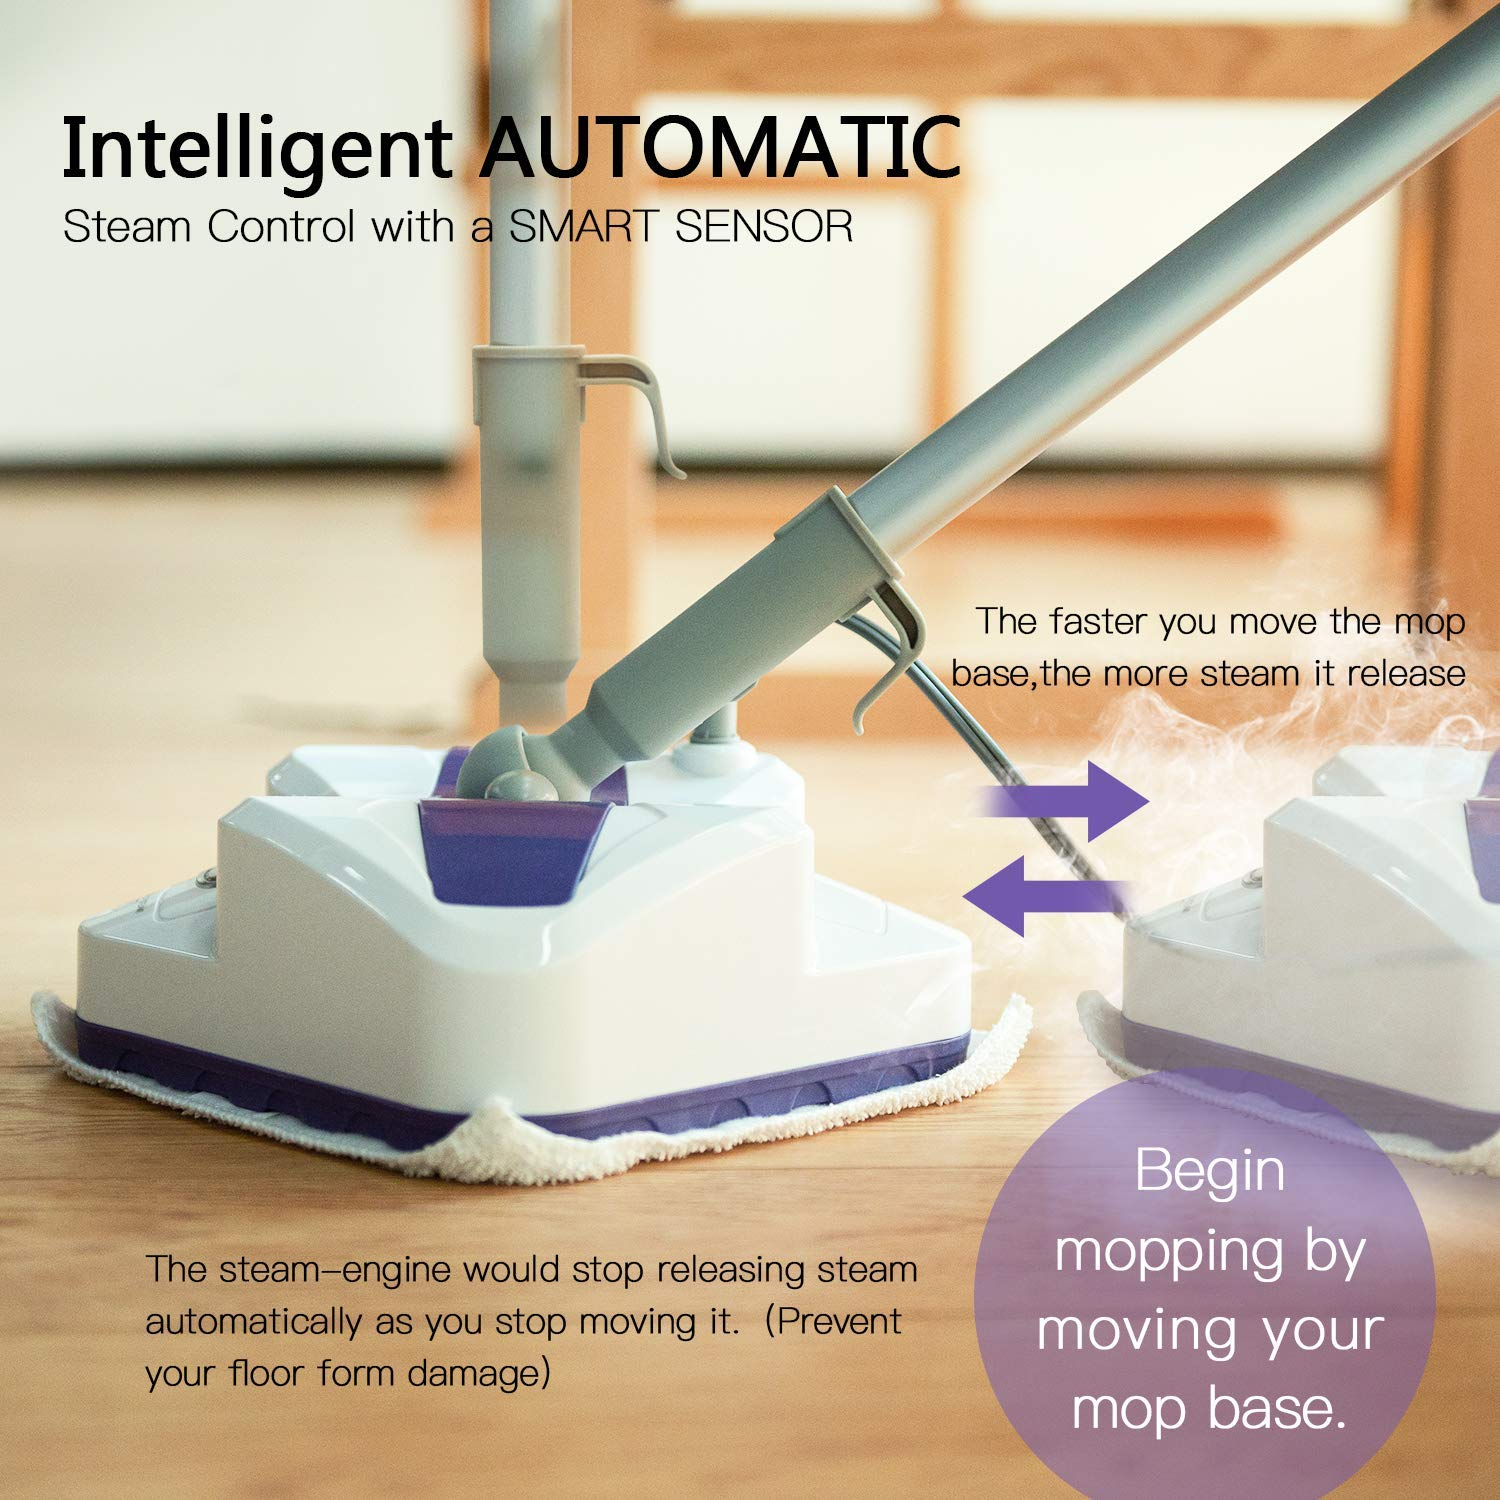 Light-N-Easy-Steam-Mop-for-Floor-Cleaning-With-Auto-Steam-Control